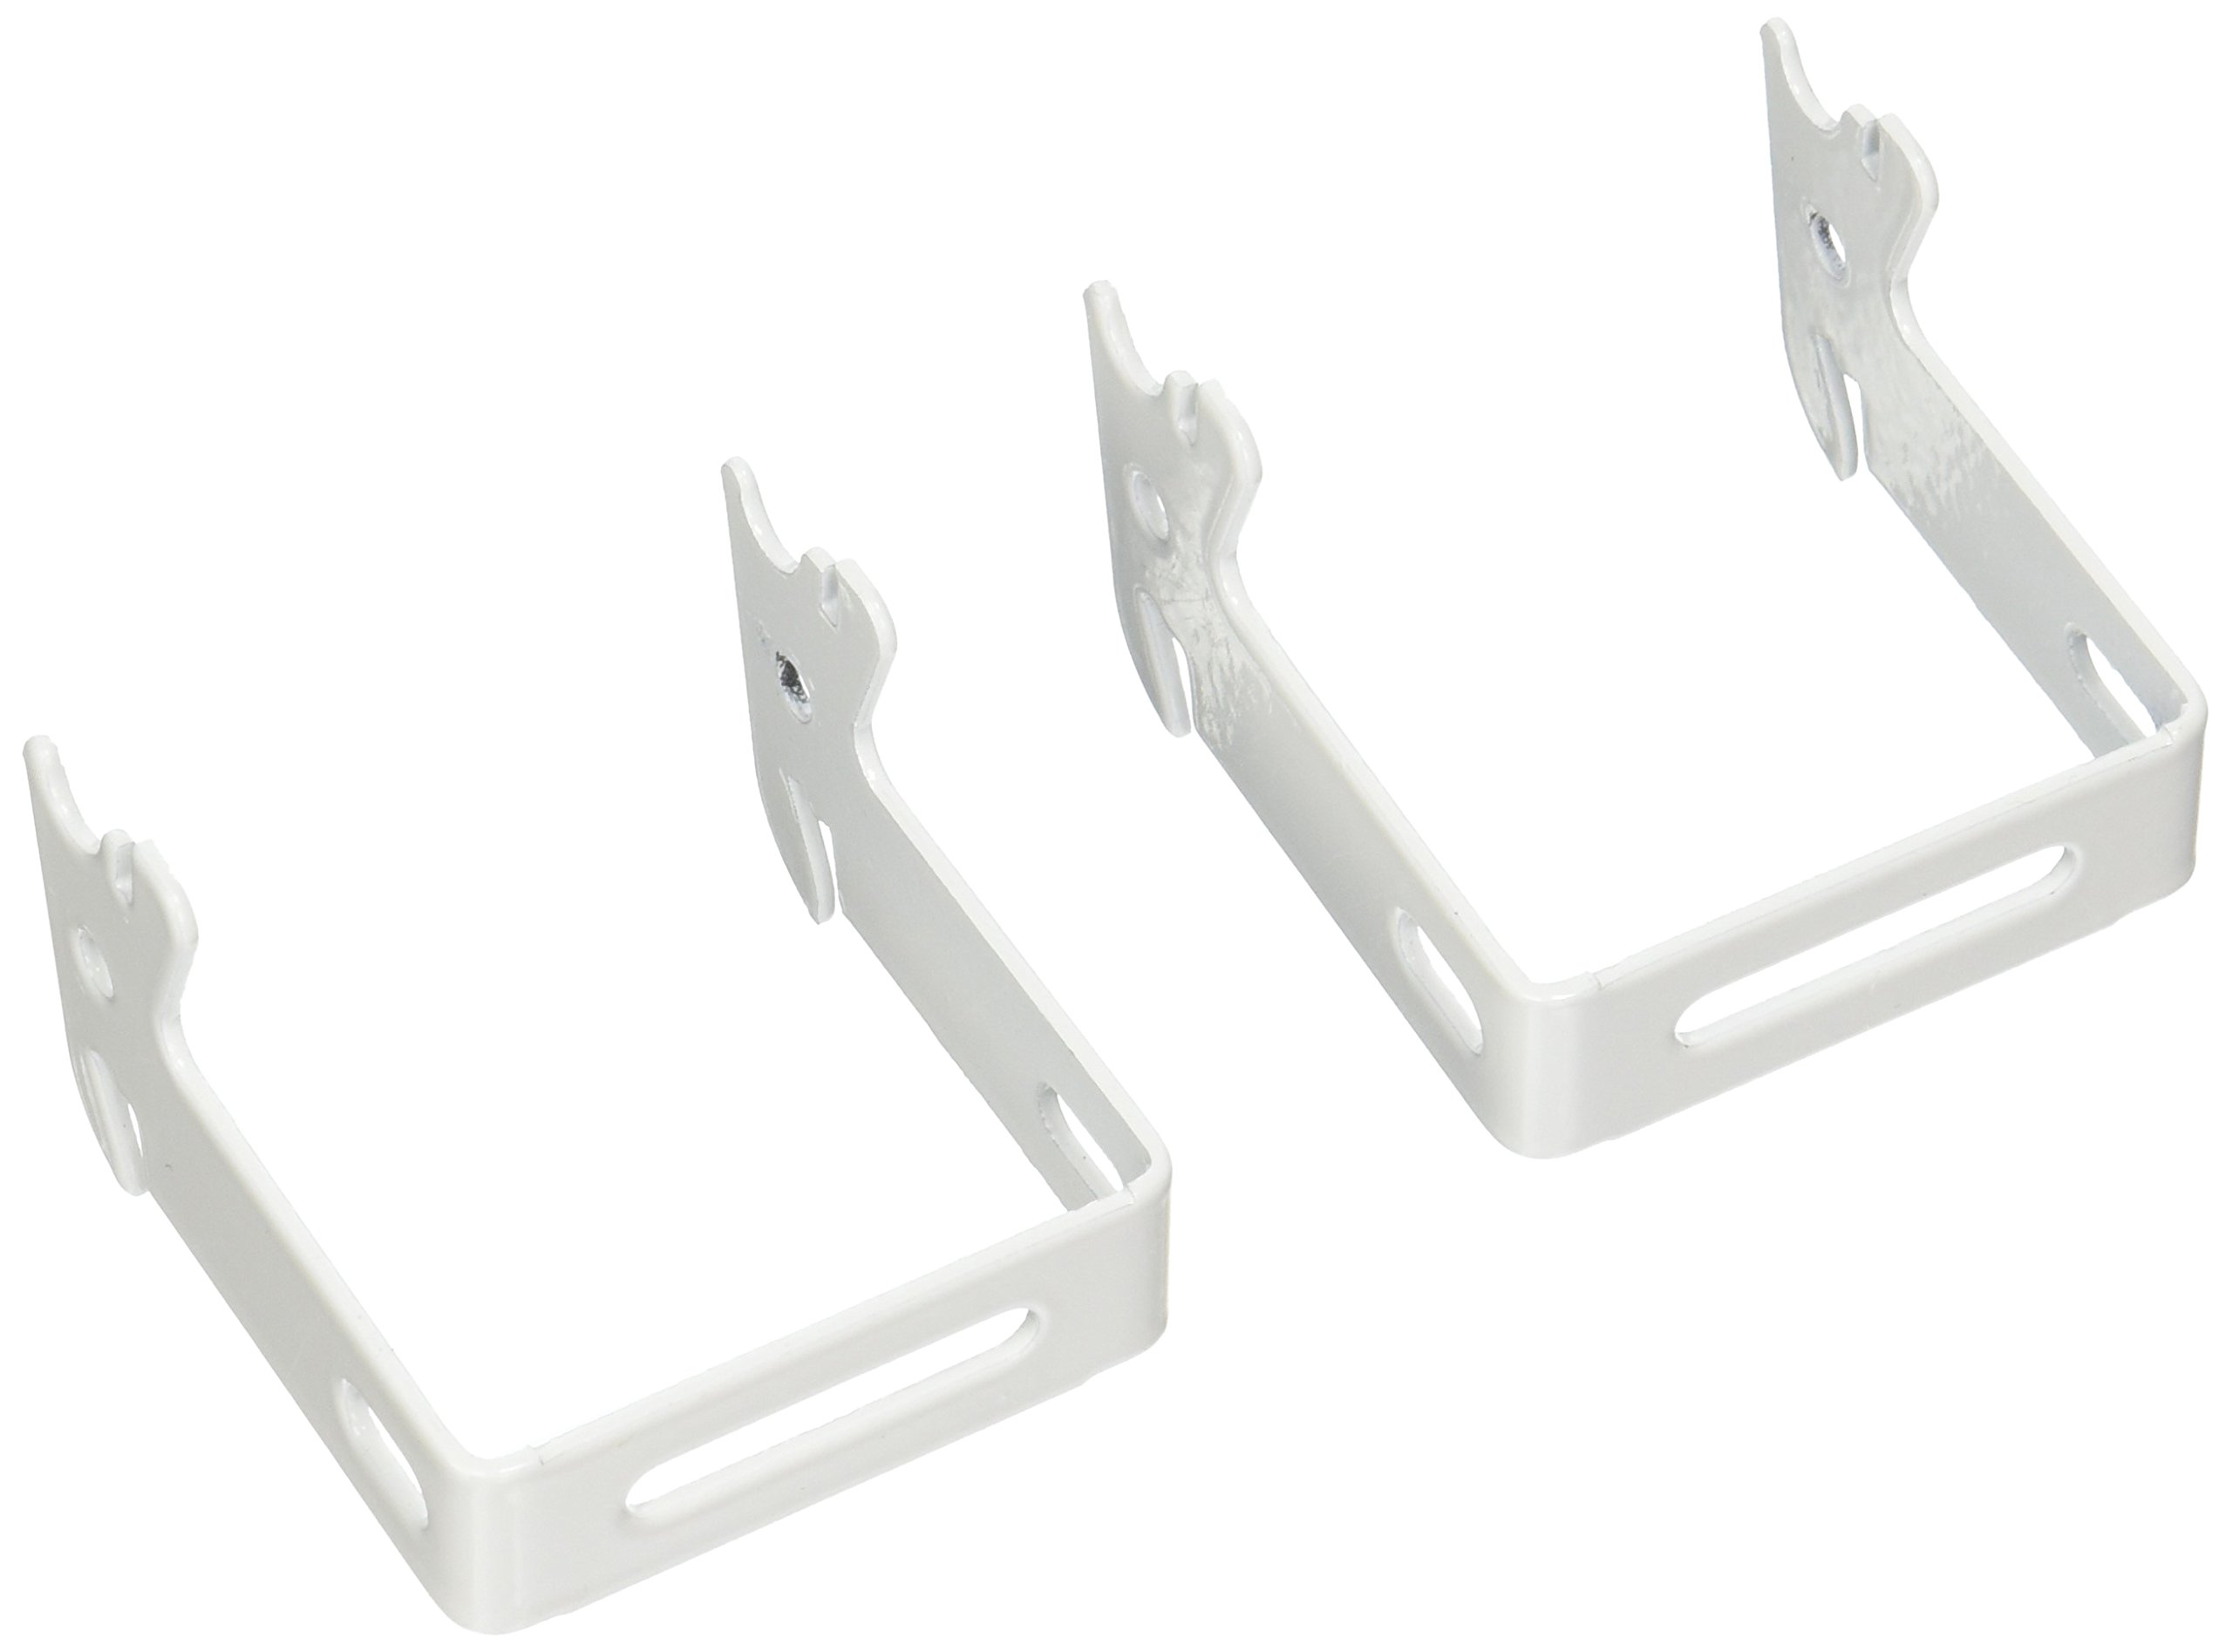 "Wall Control 10-CB-022 W C-Bracket Slotted Metal Pegboard Hook for Wall Control Pegboard Only, 2"" x 2"", White"